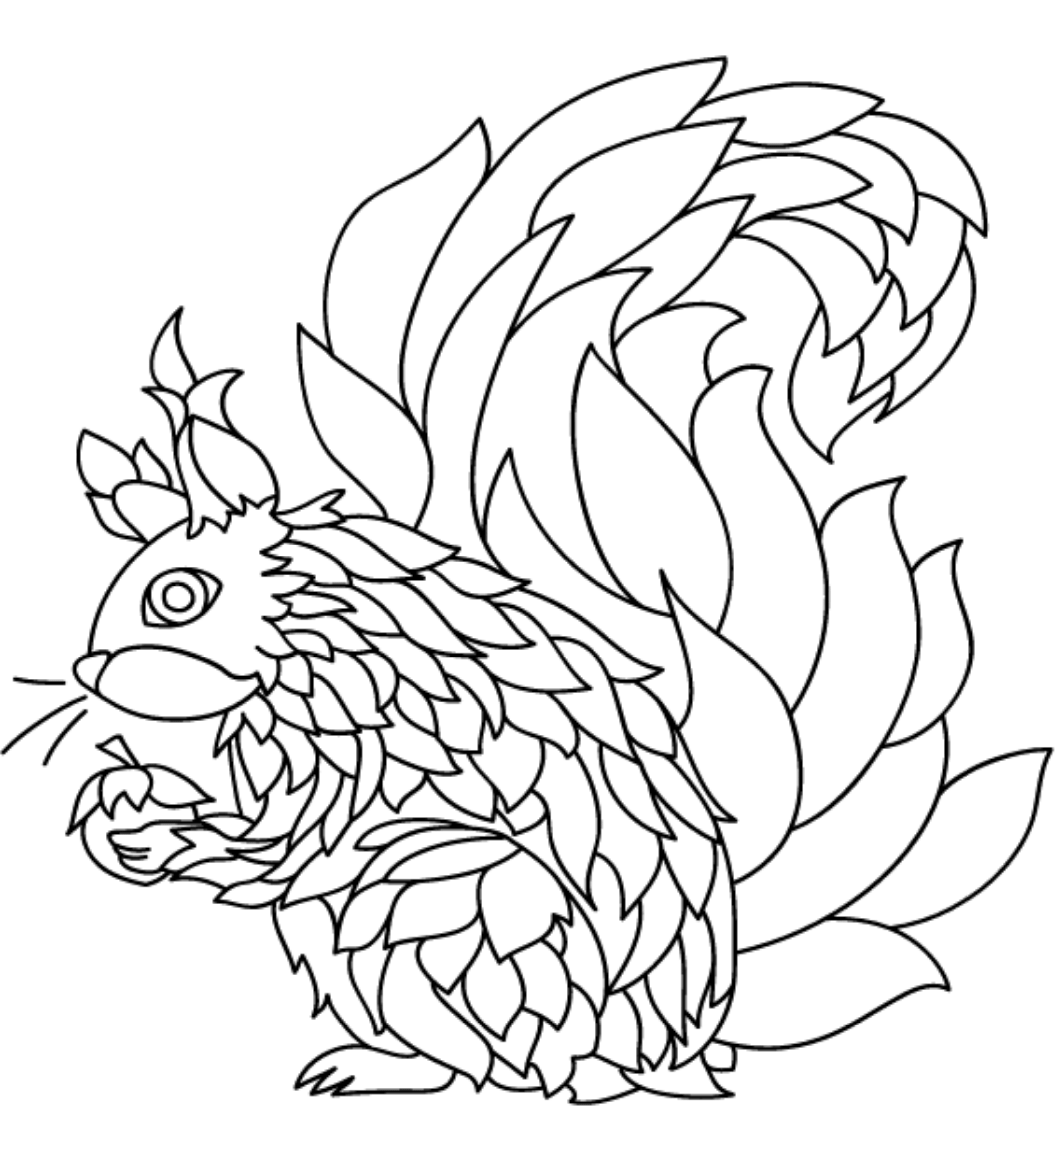 squirrel coloring pages free squirrel coloring pages squirrel free pages coloring